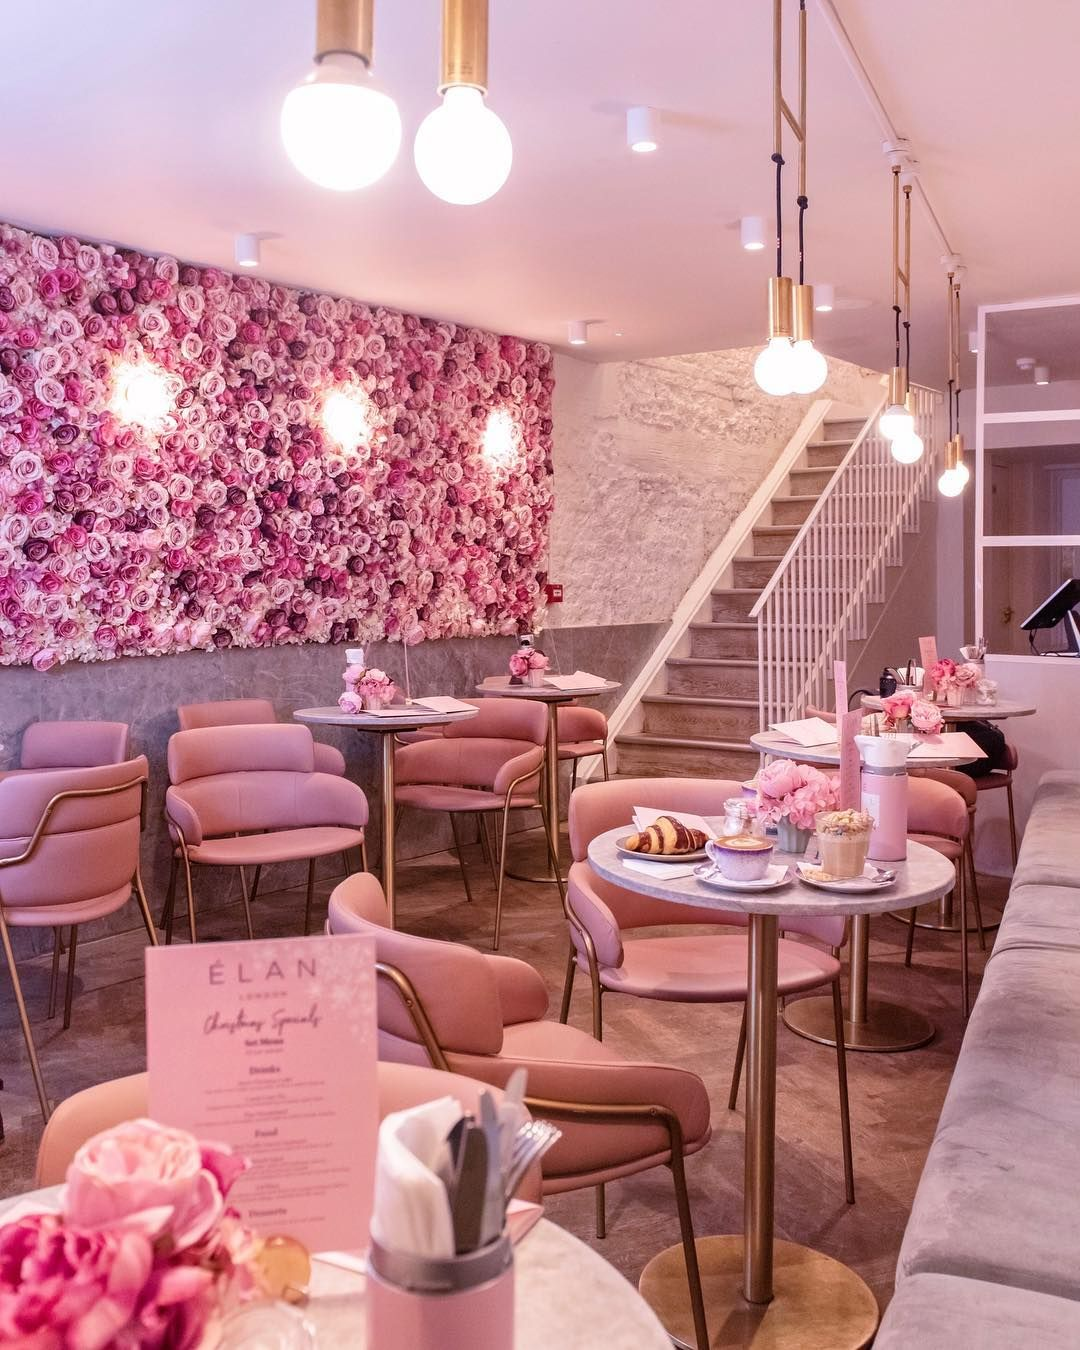 Park Lane settings 🌸 Cake shop design, Cafe interior